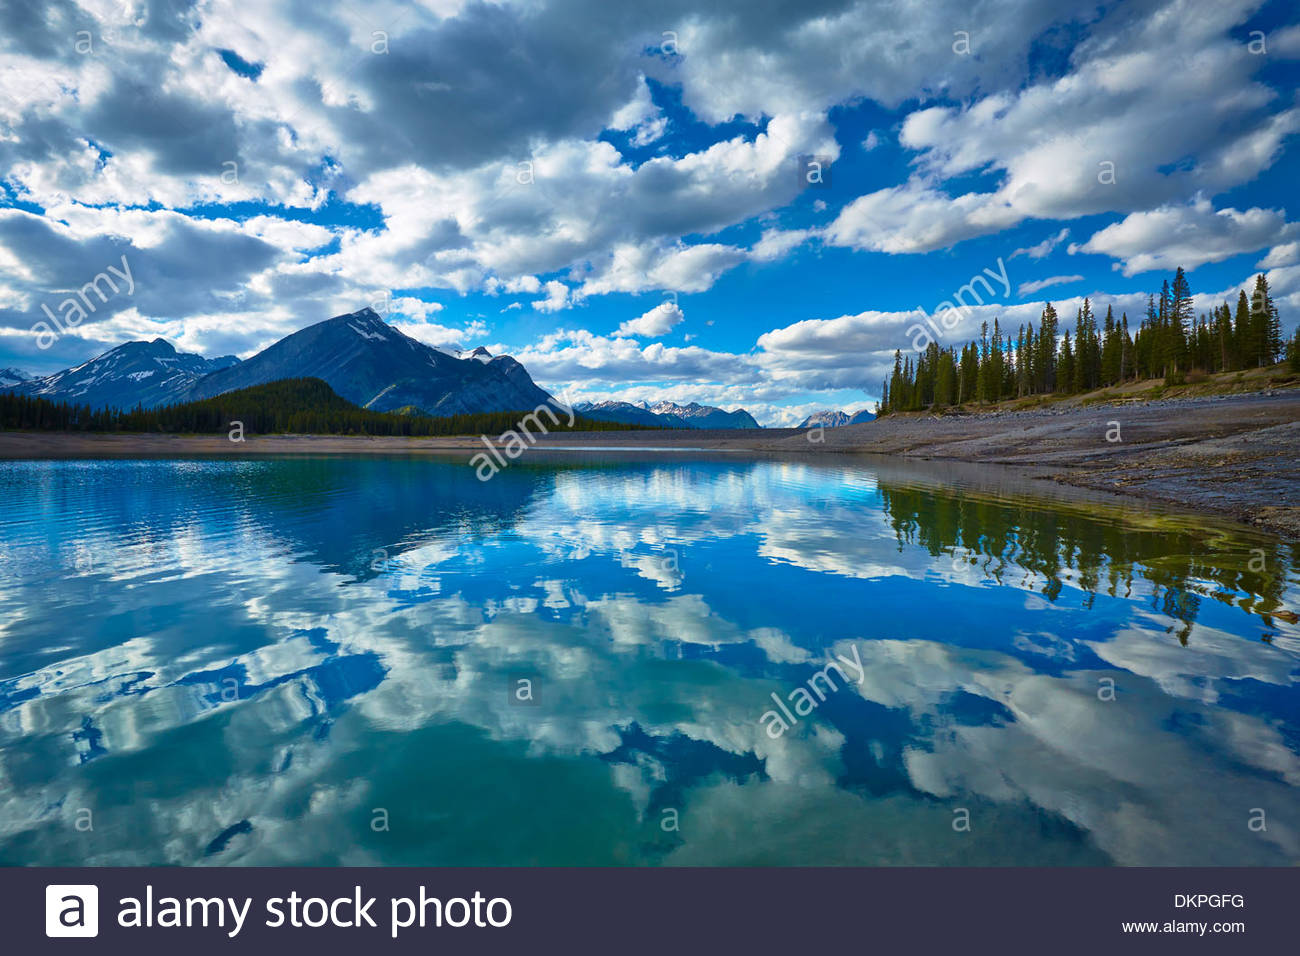 Clouds reflected in still lake - Stock Image